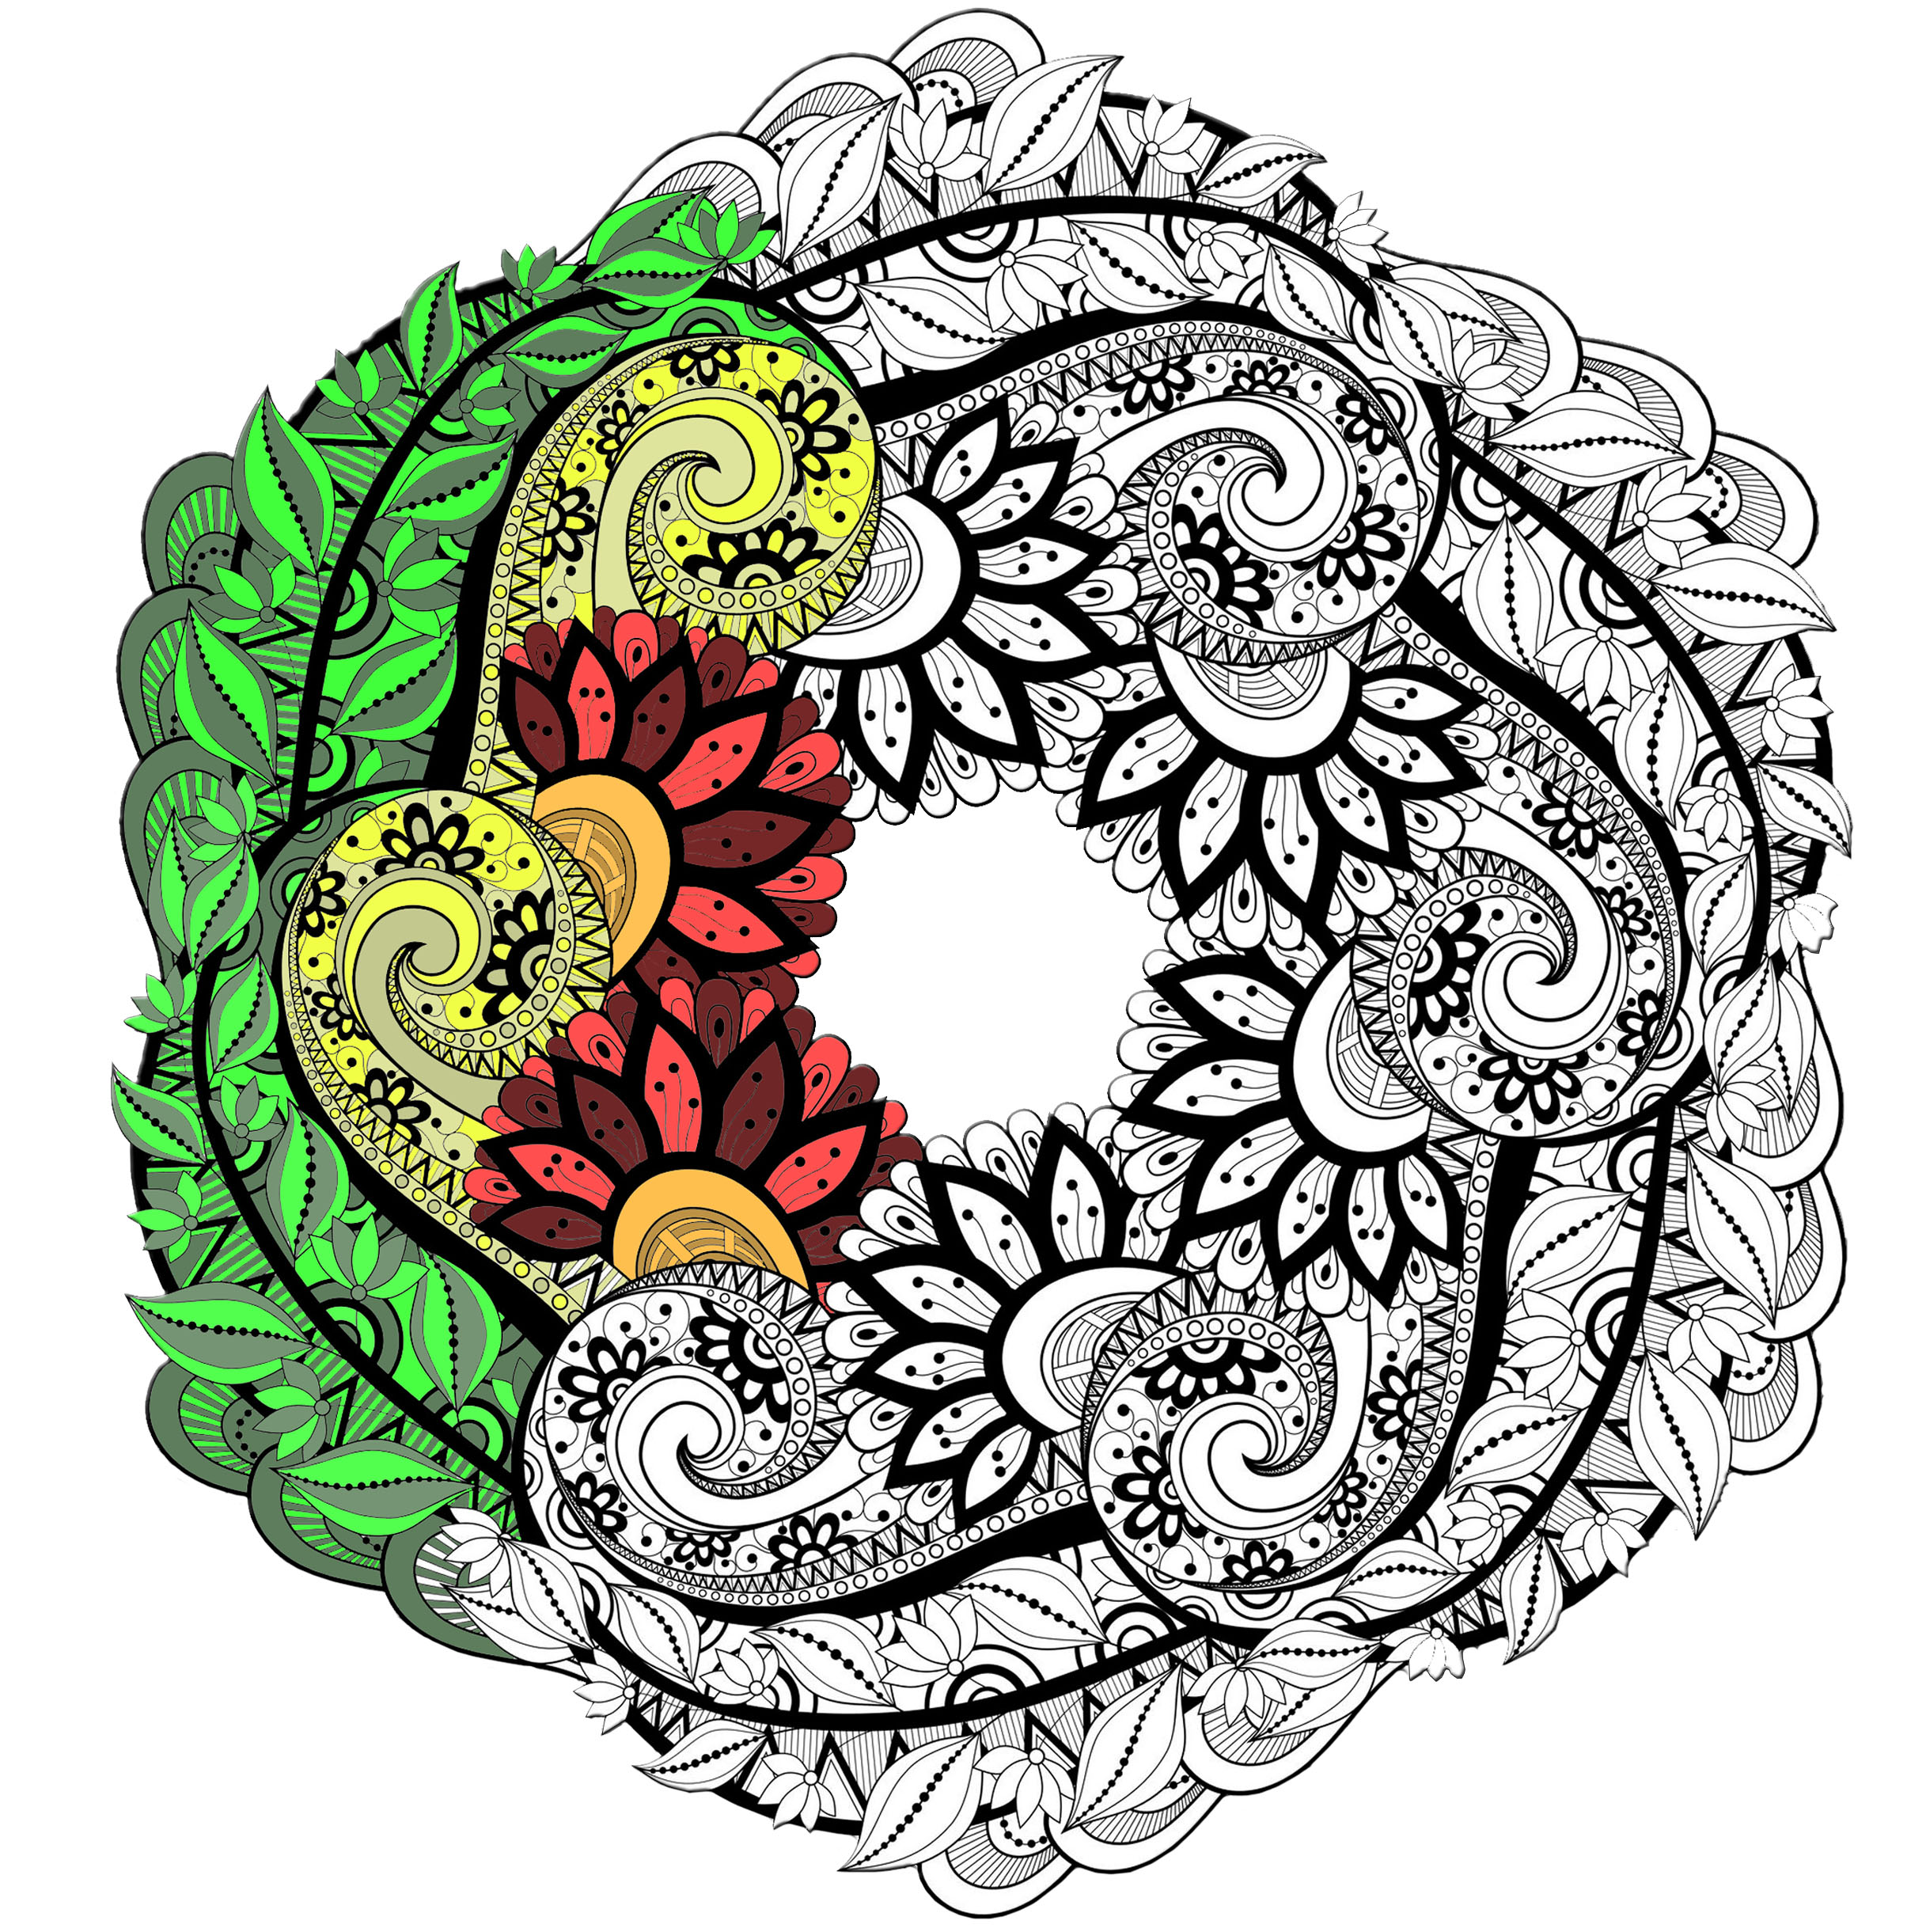 Colouring in pages mandala - Colouring In Pages Mandala 52